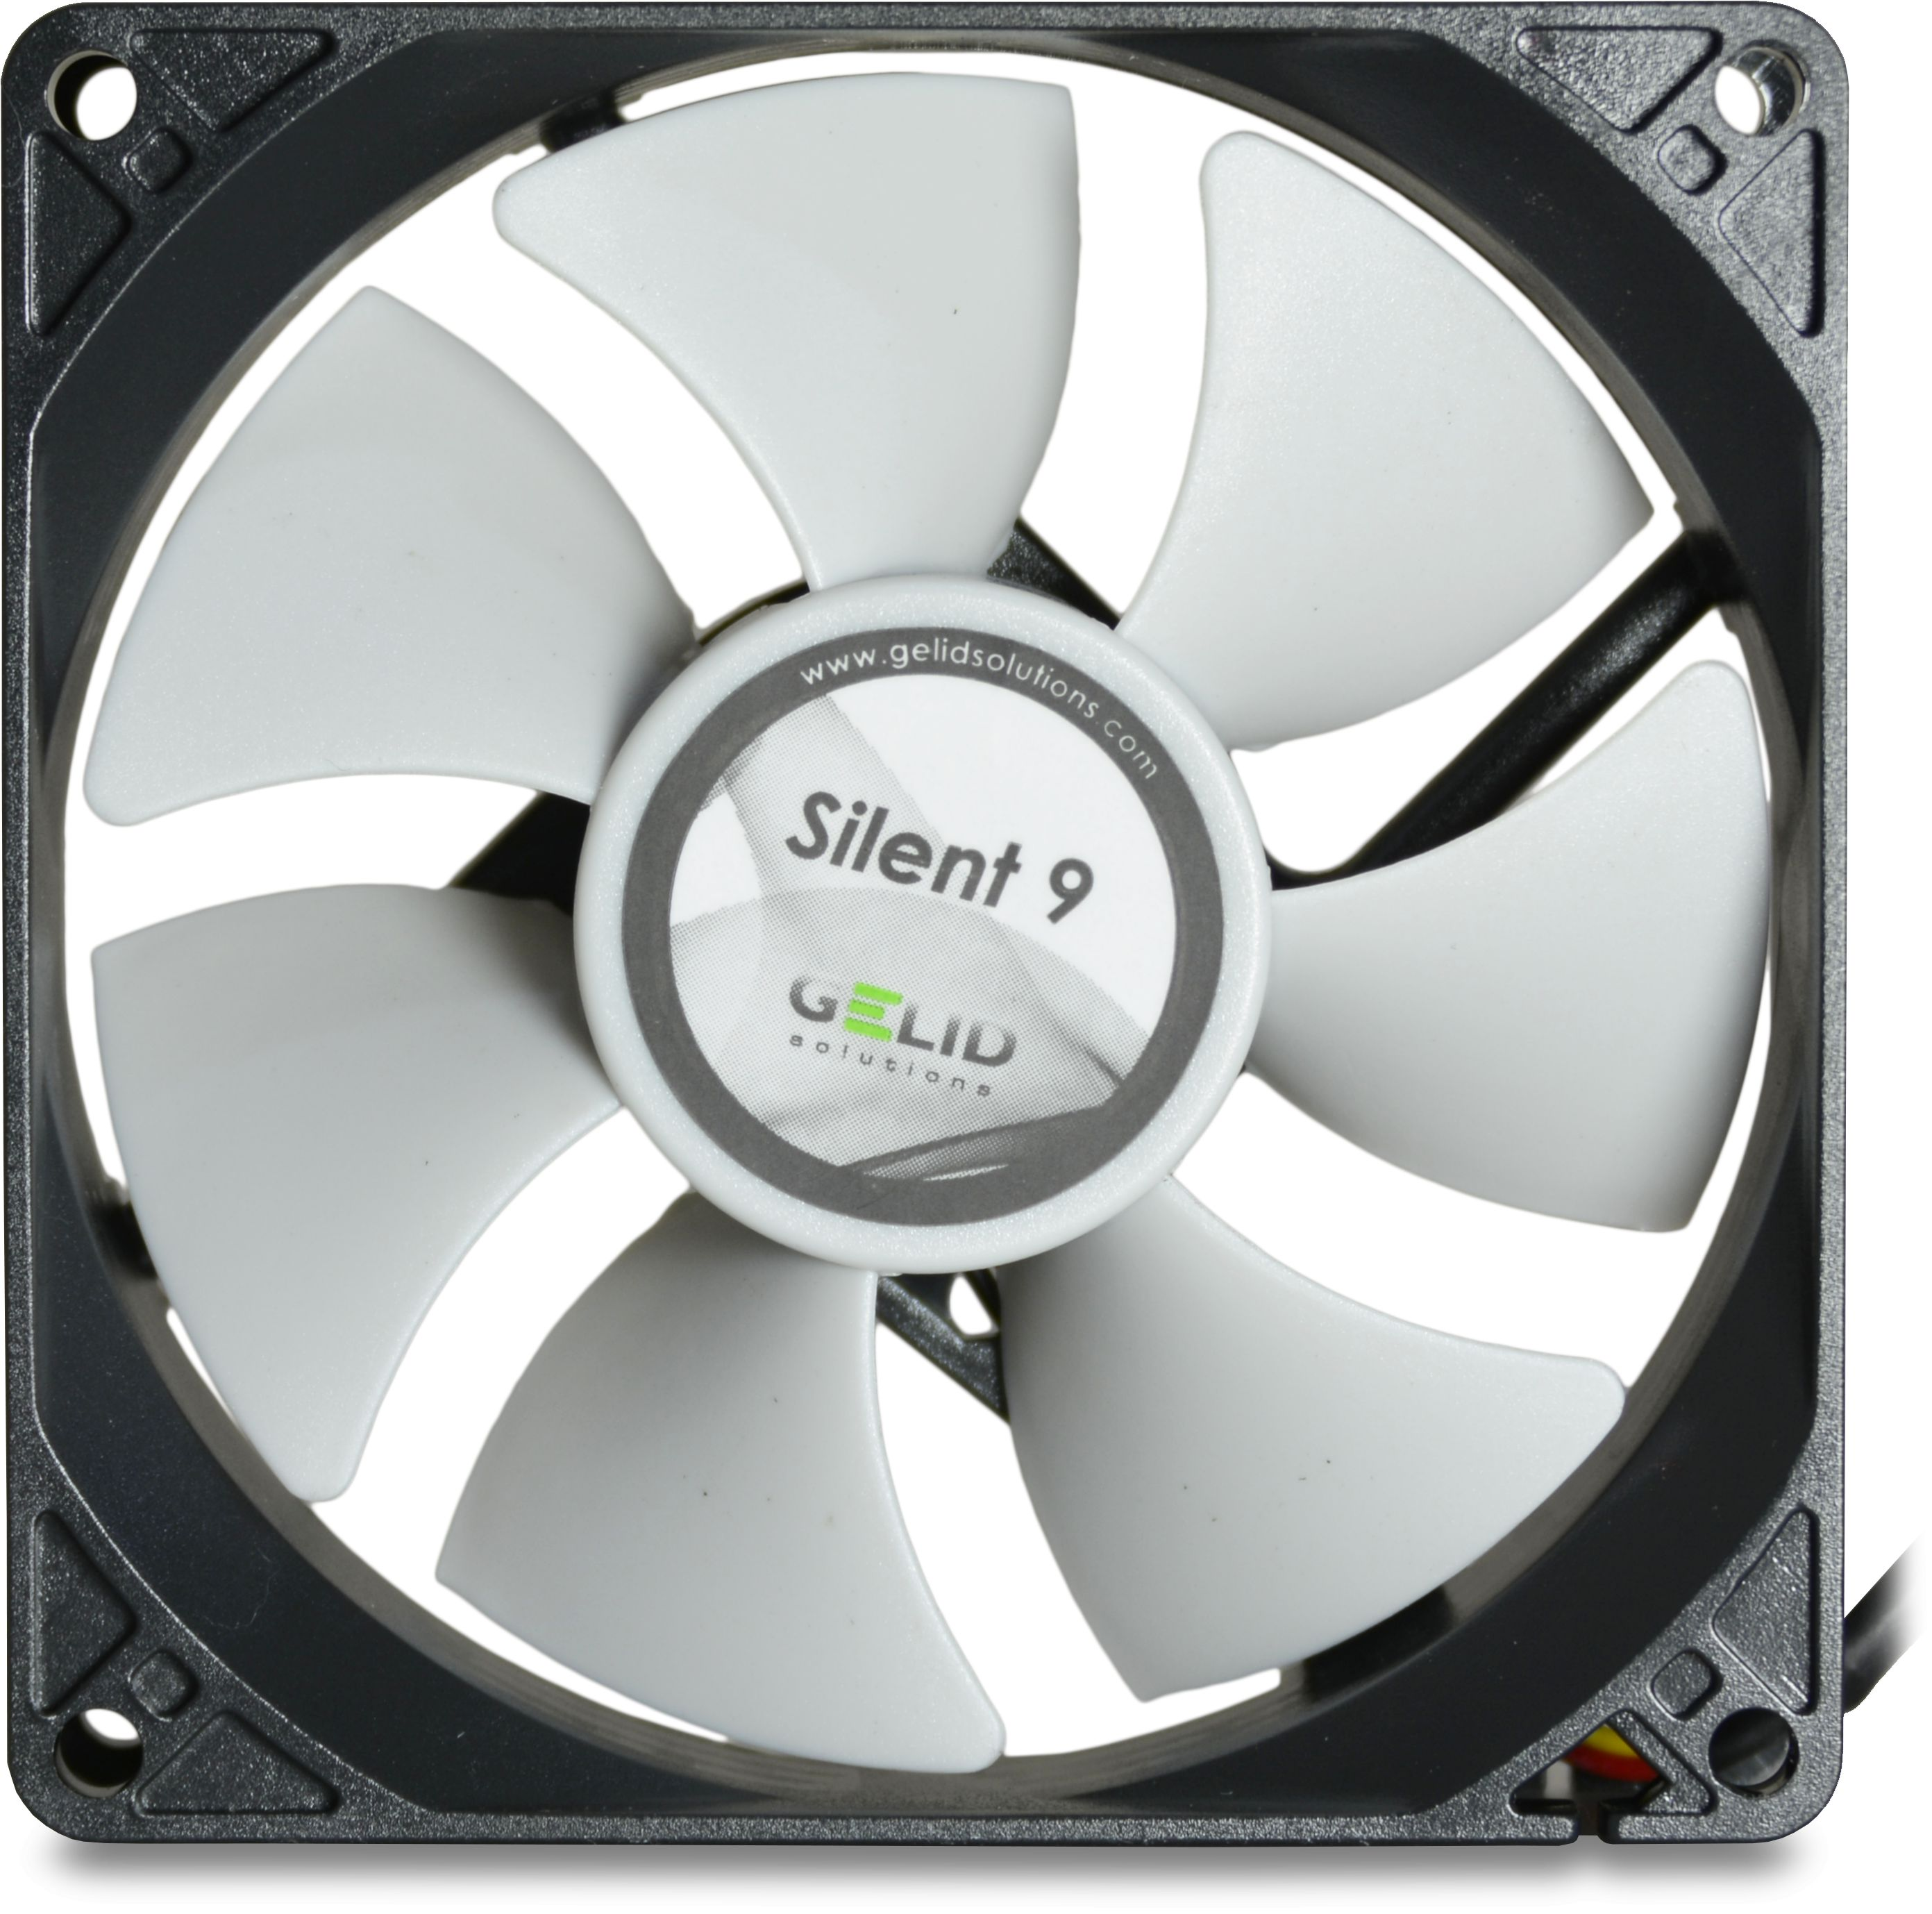 Silent 9 92mm Quiet Case Fan